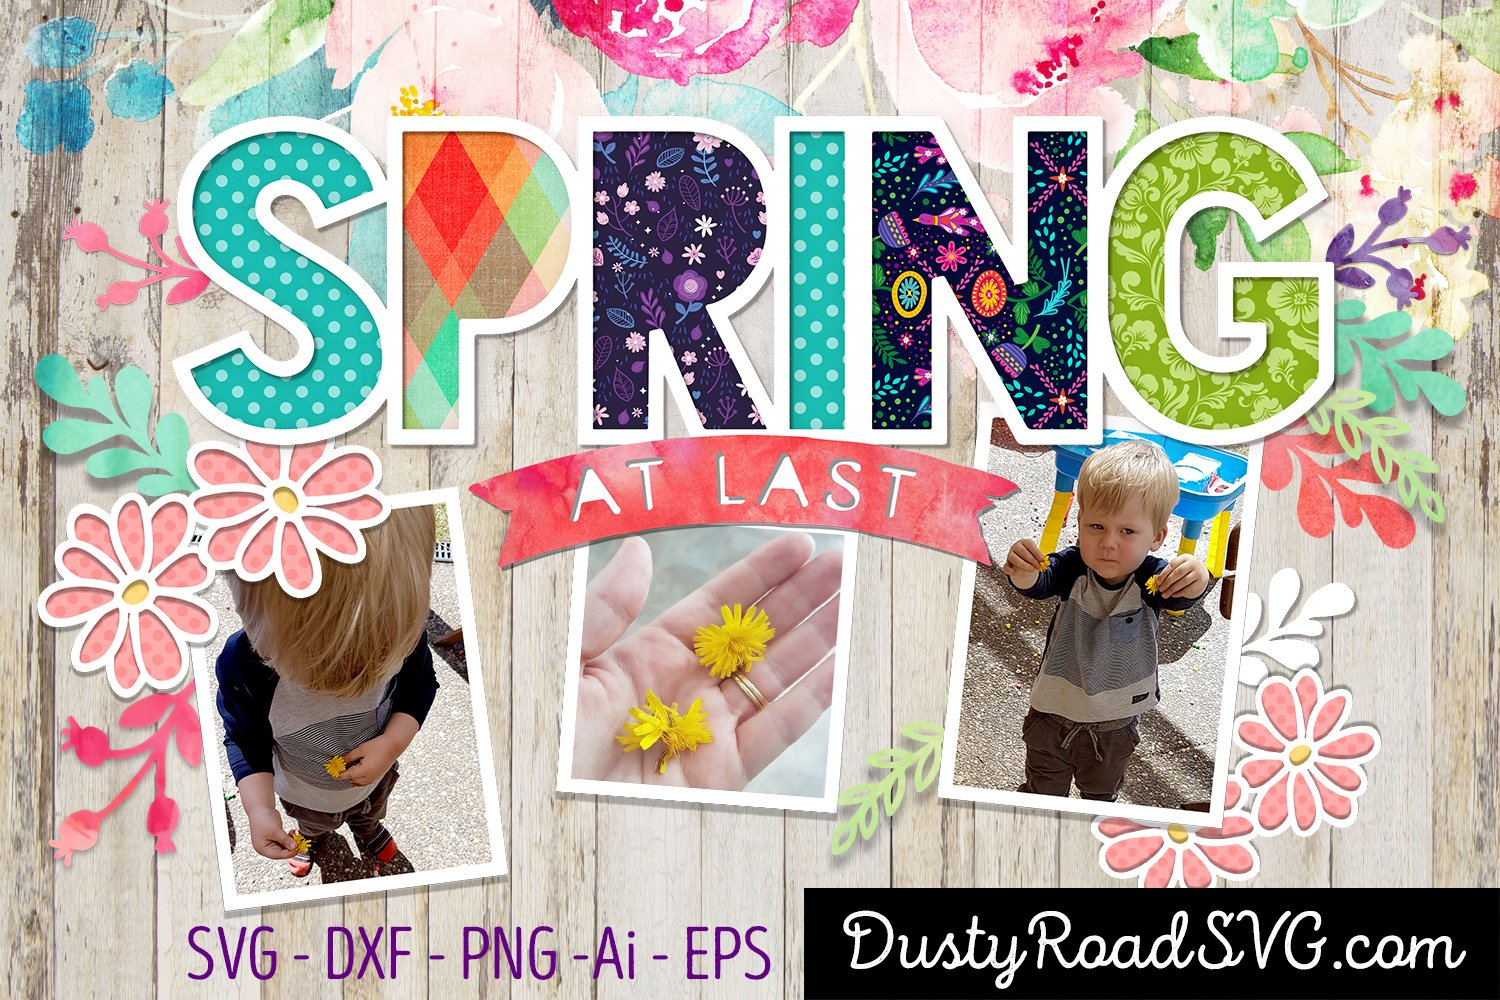 SPRING AT LAST - Scrapbook - cut file - svg png eps dxf example image 1